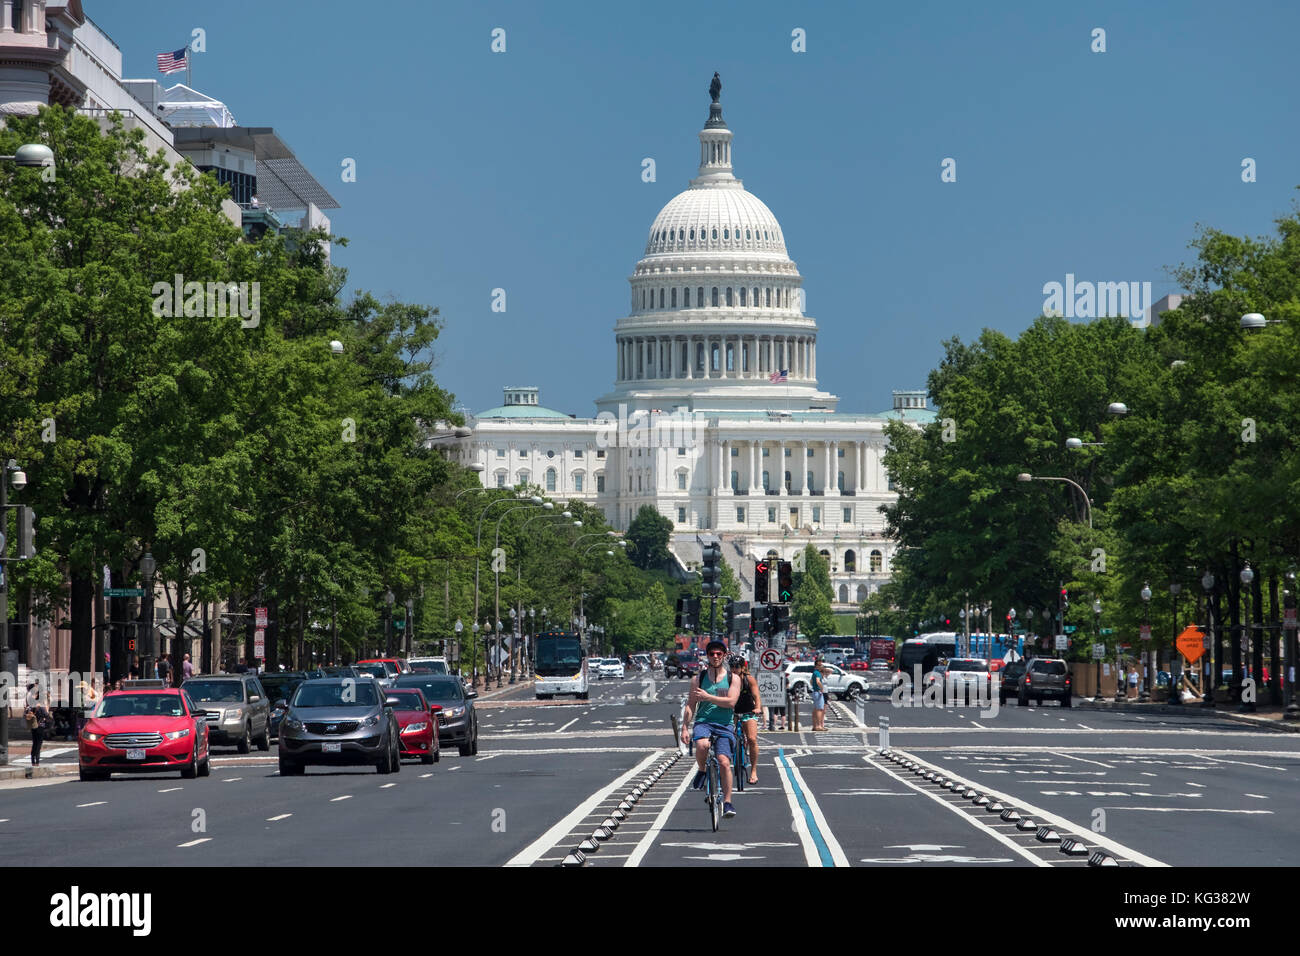 United States Capitol Building and Pennsylvania Avenue, Washington DC, USA - Stock Image